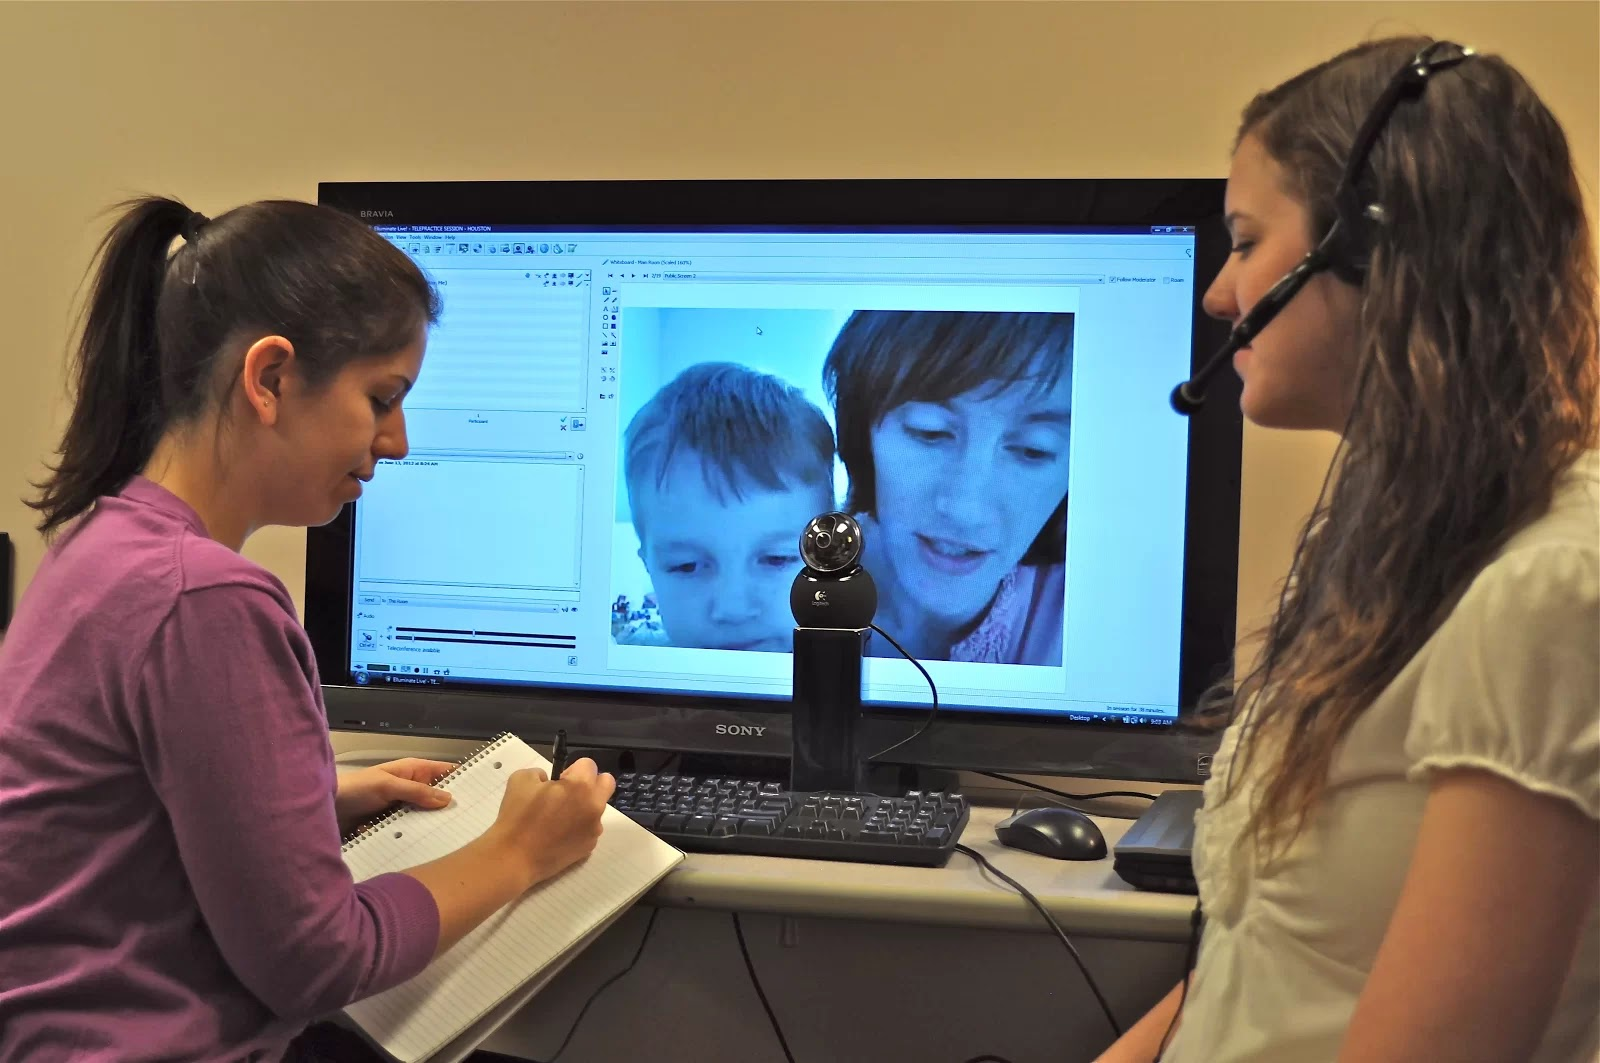 telenursing health care and nurse Telehealth - the future of healthcare telenursing allows for fewer nurses to deliver more care a win-win situation for nurses and patients.